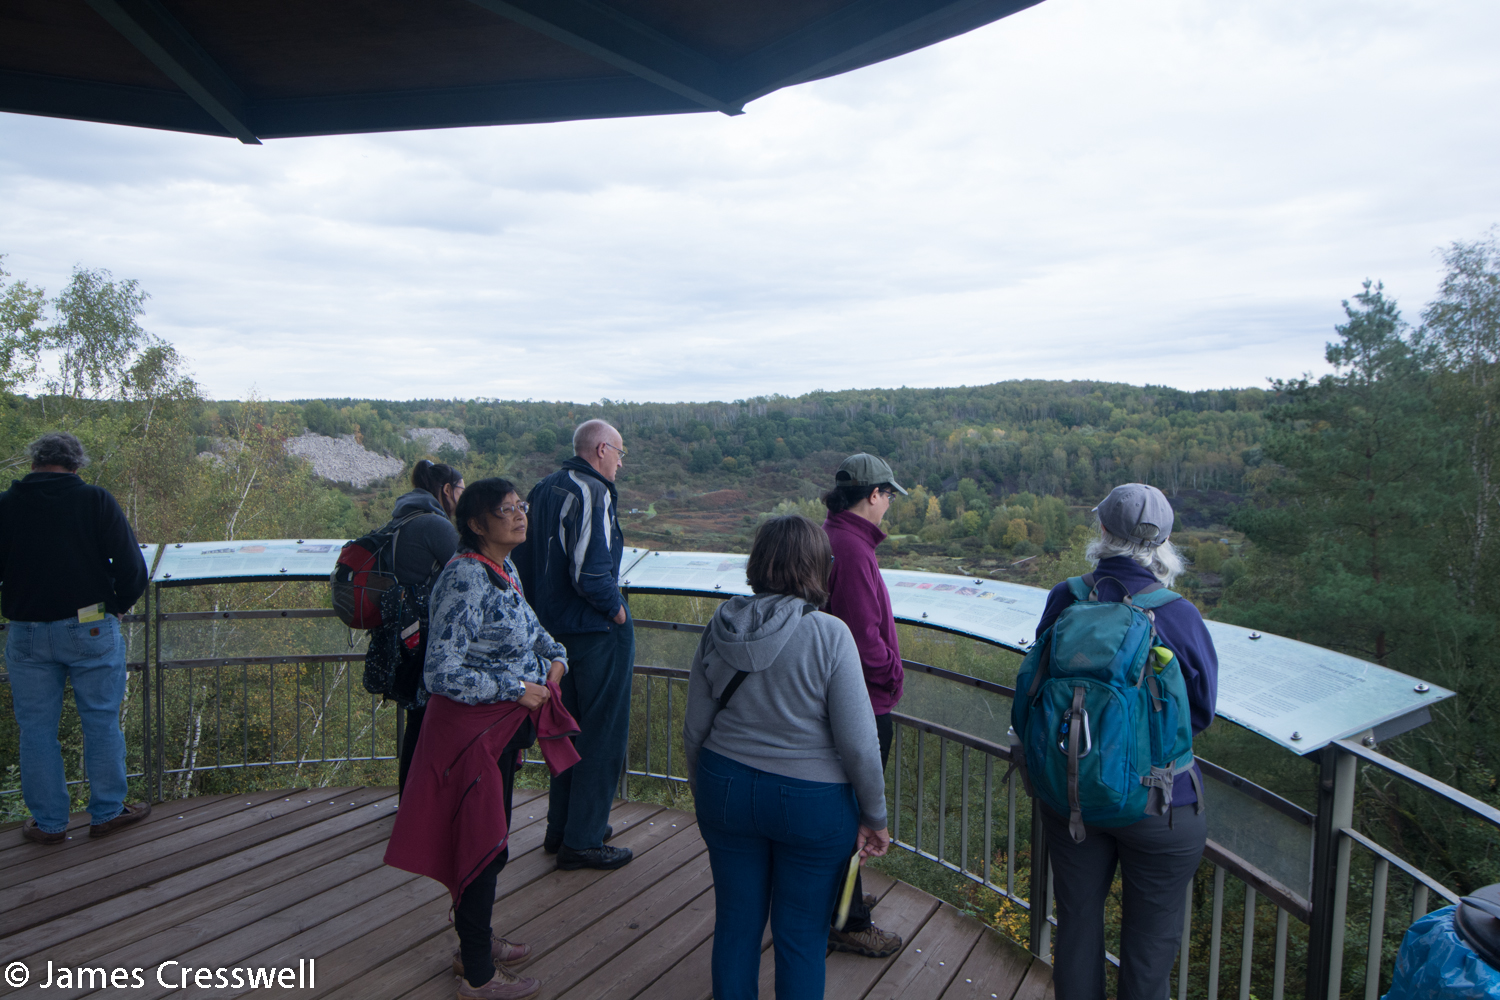 Group on observation platform